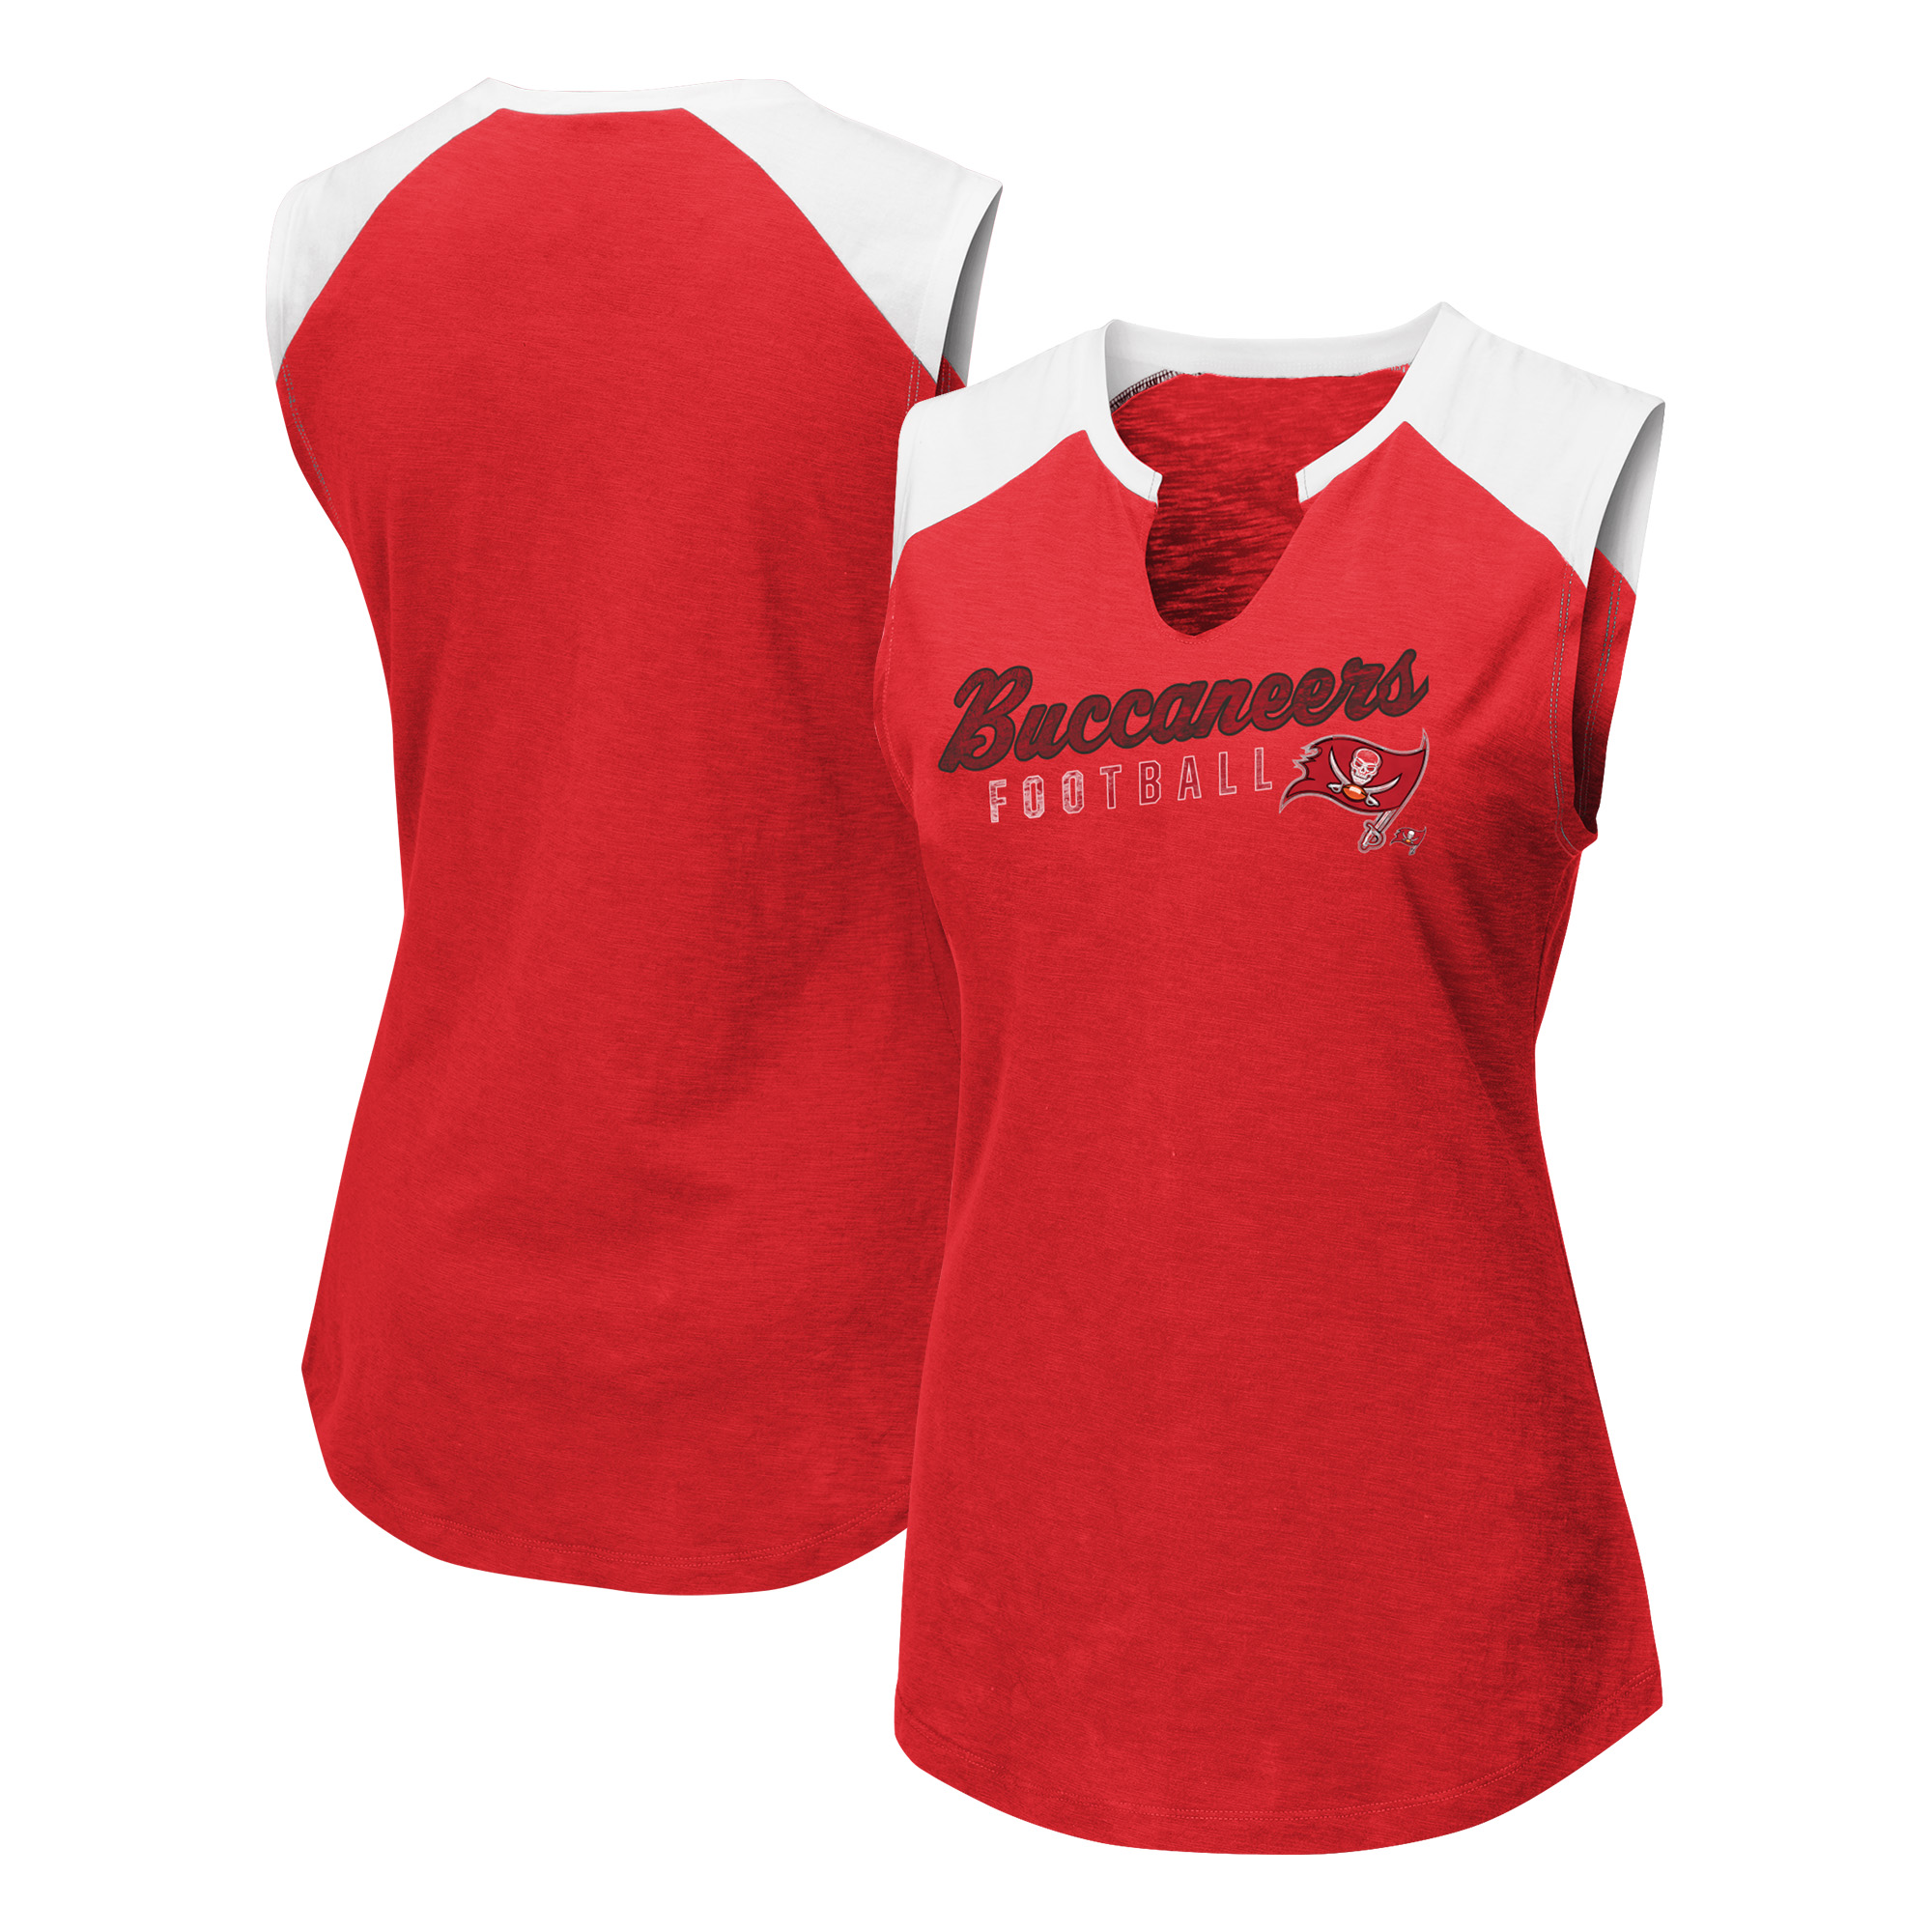 Tampa Bay Buccaneers Majestic Women's V-Notch Muscle Tank Top - Red/White